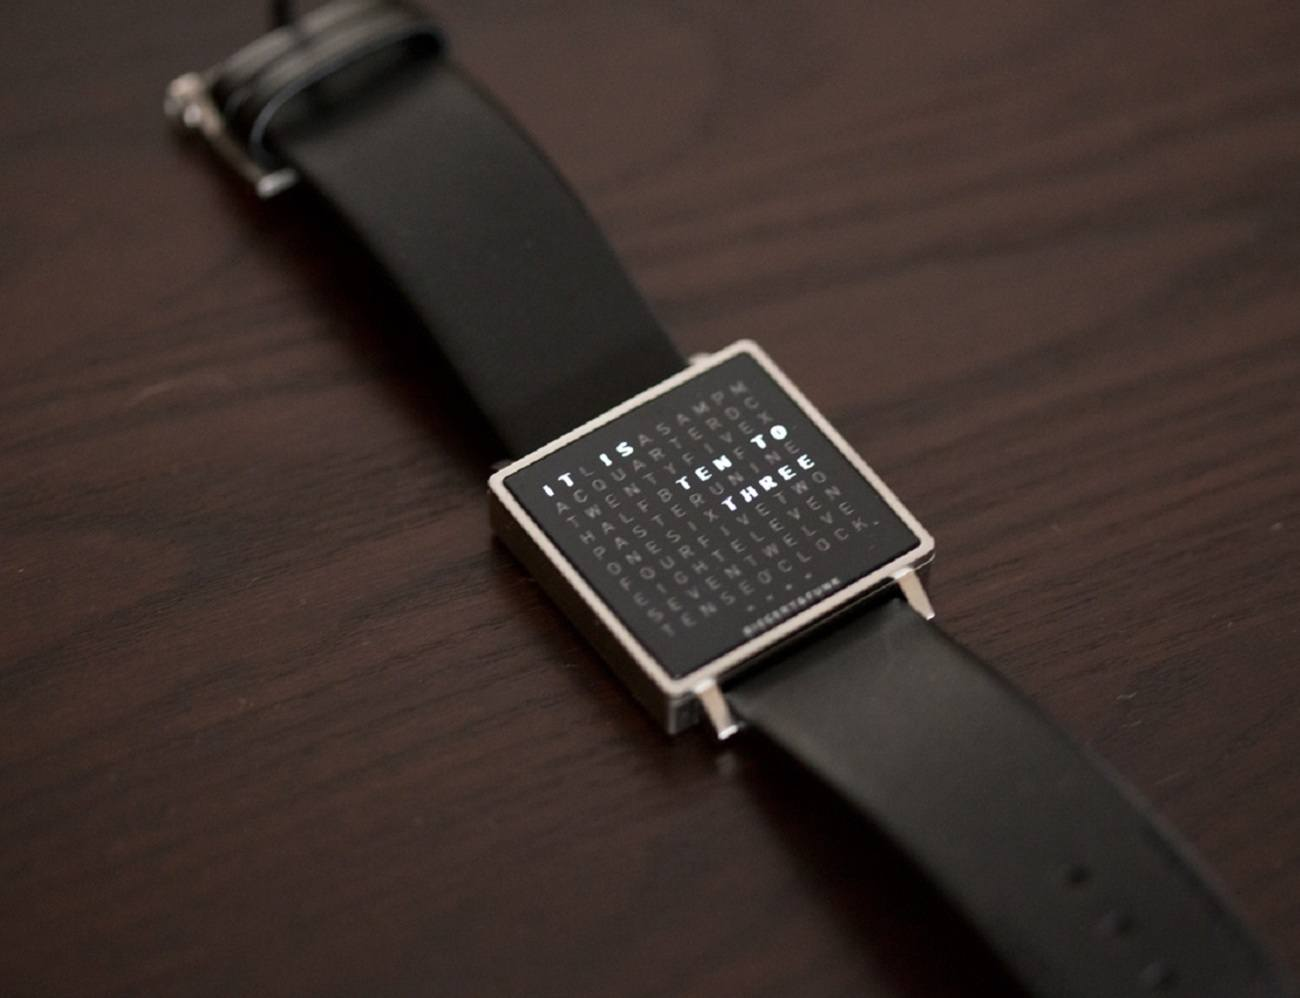 Qlocktwo Watch – Time Display in Words